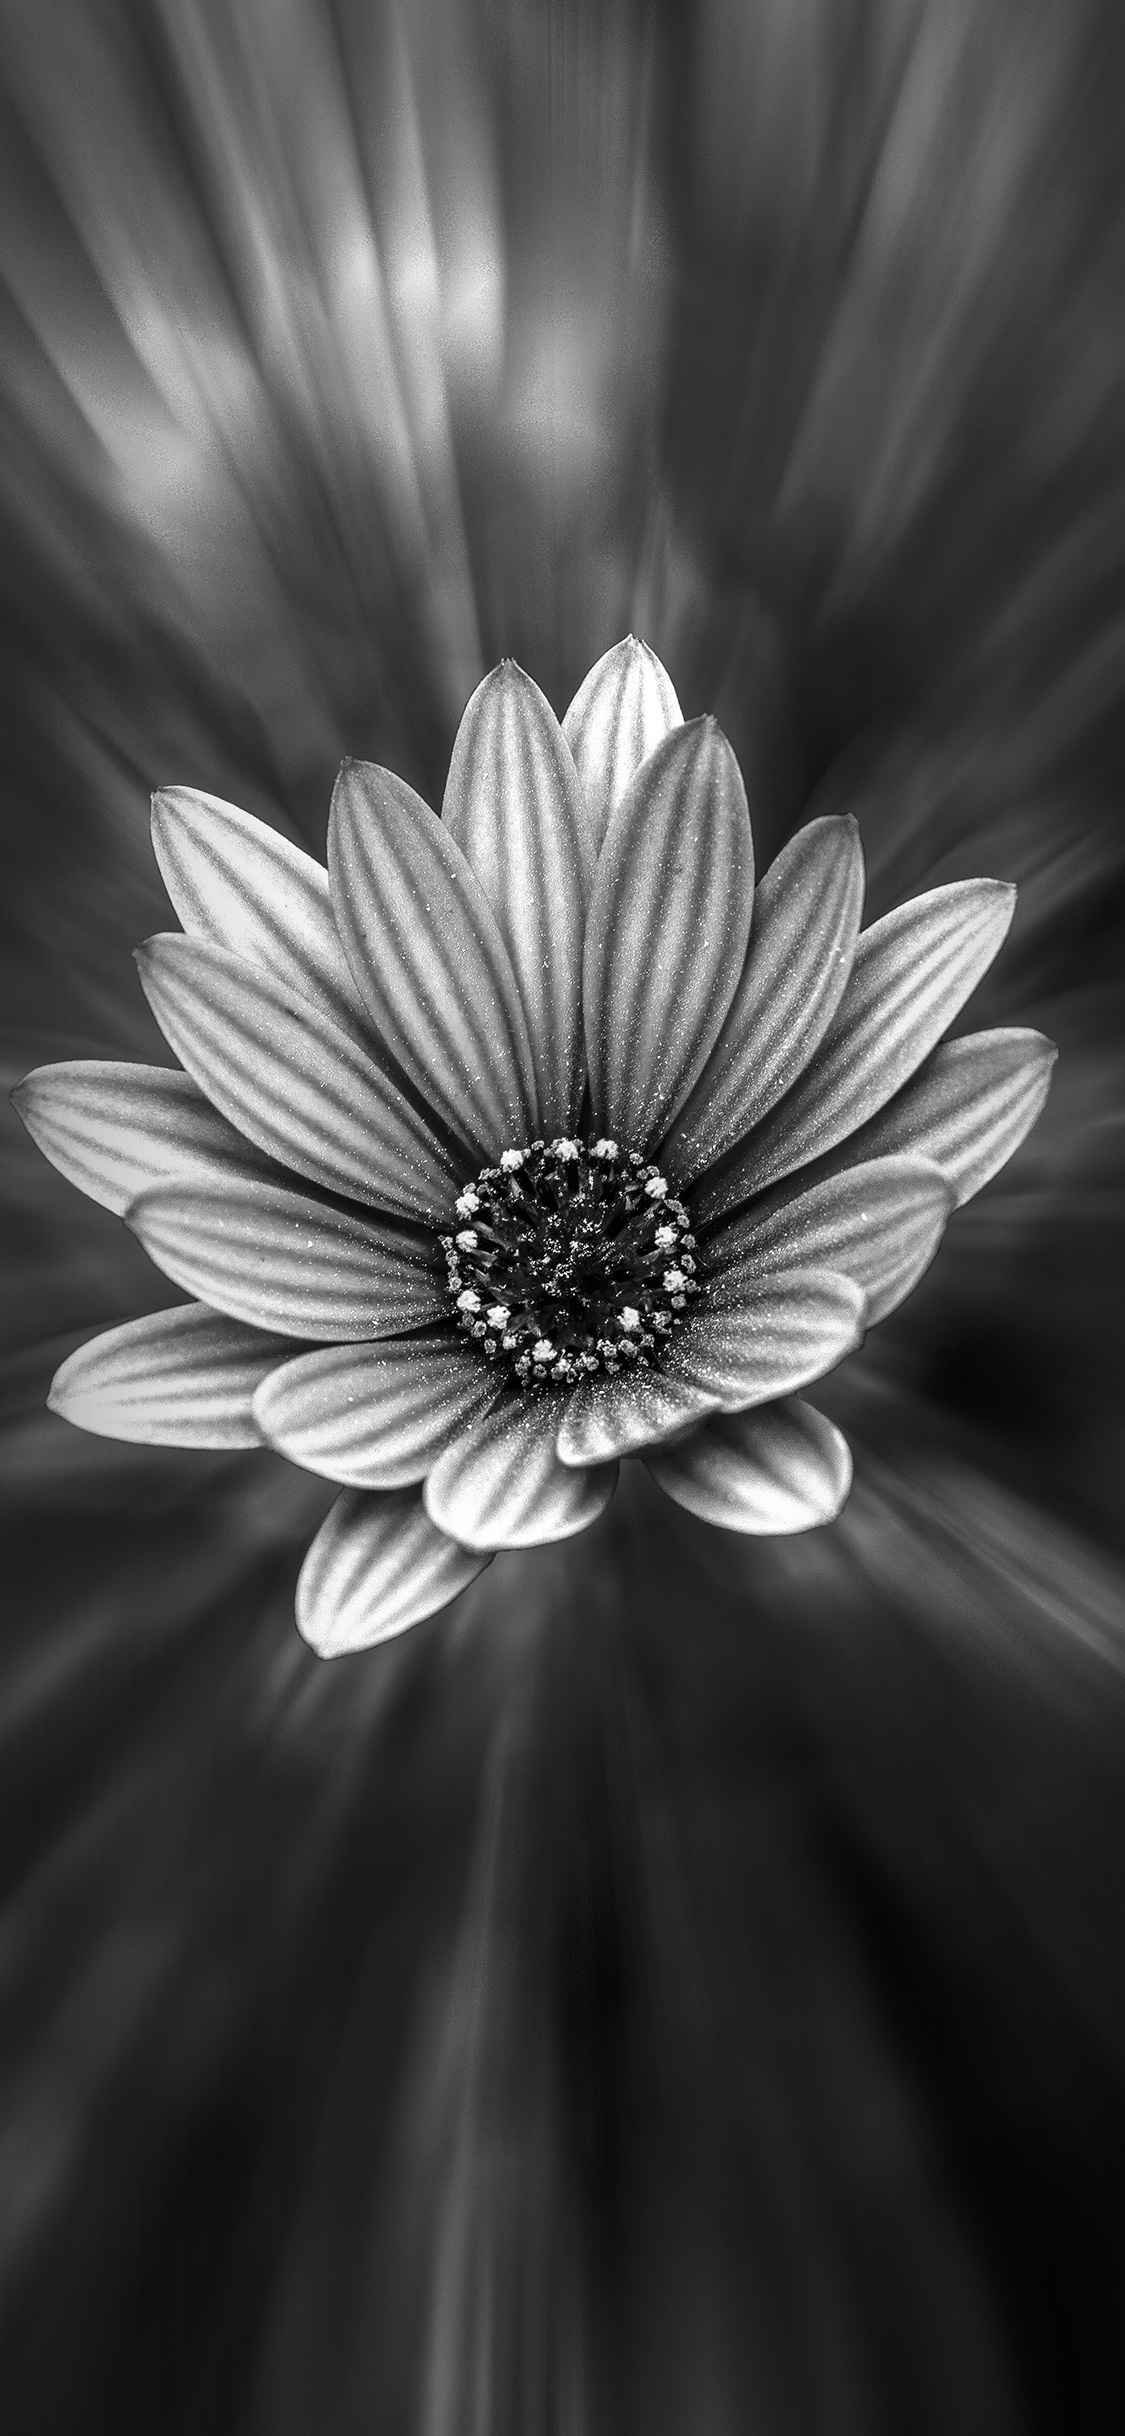 Iphonexpapers Com Iphone X Wallpaper Ng48 Flower Dark Black Nature Bw